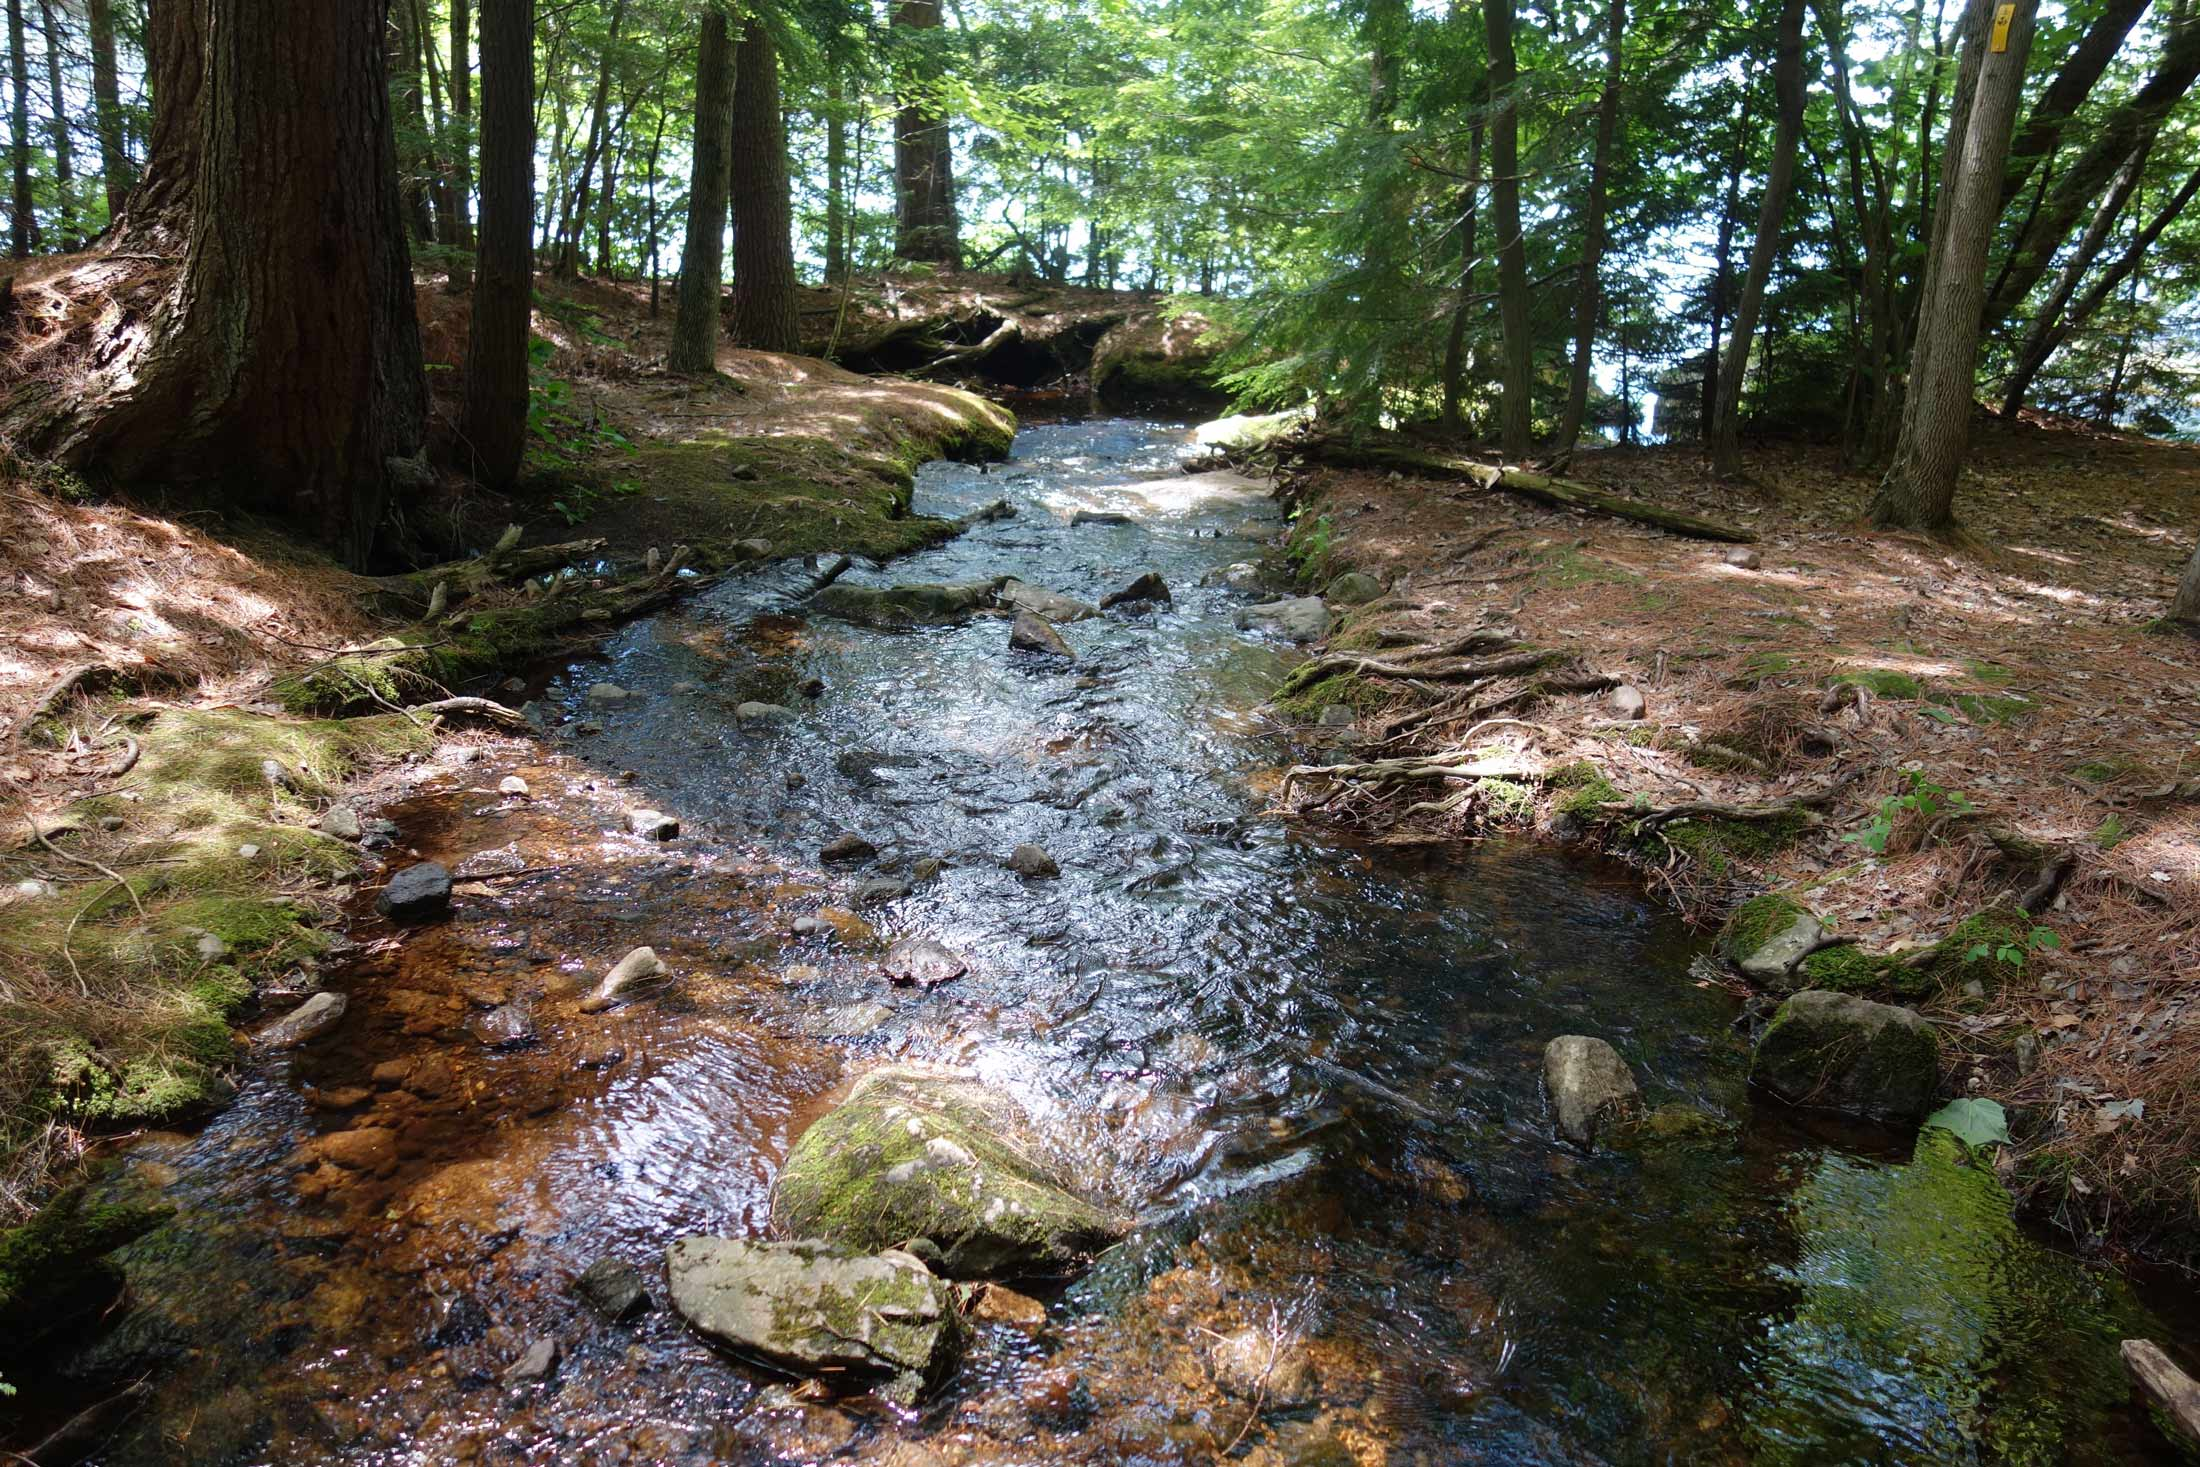 The-Fells-Estate-Jon-Hay-Forest-Stream.jpg